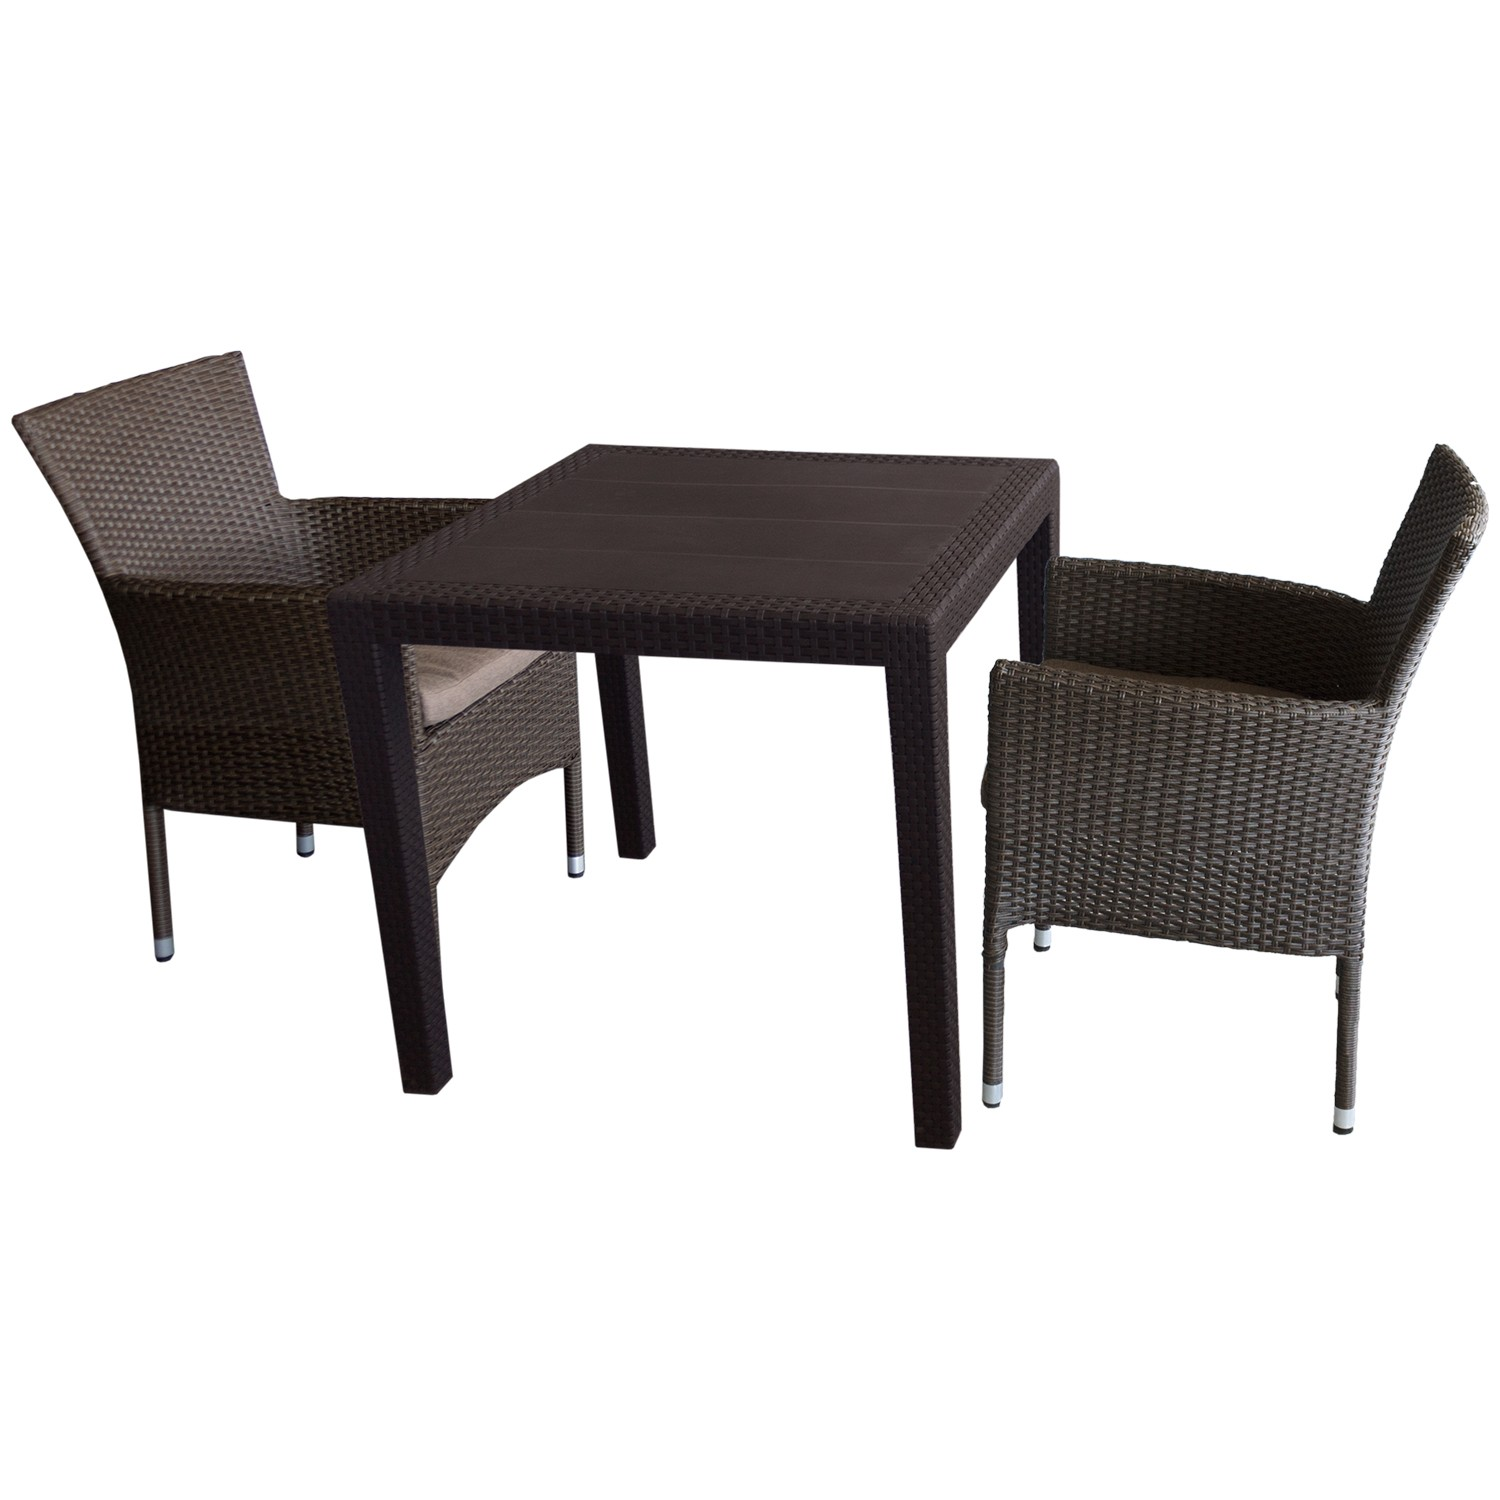 3tlg bistrogarnitur rattan look 79x79cm 2x polyrattan sessel inkl kissen garten bistro und. Black Bedroom Furniture Sets. Home Design Ideas